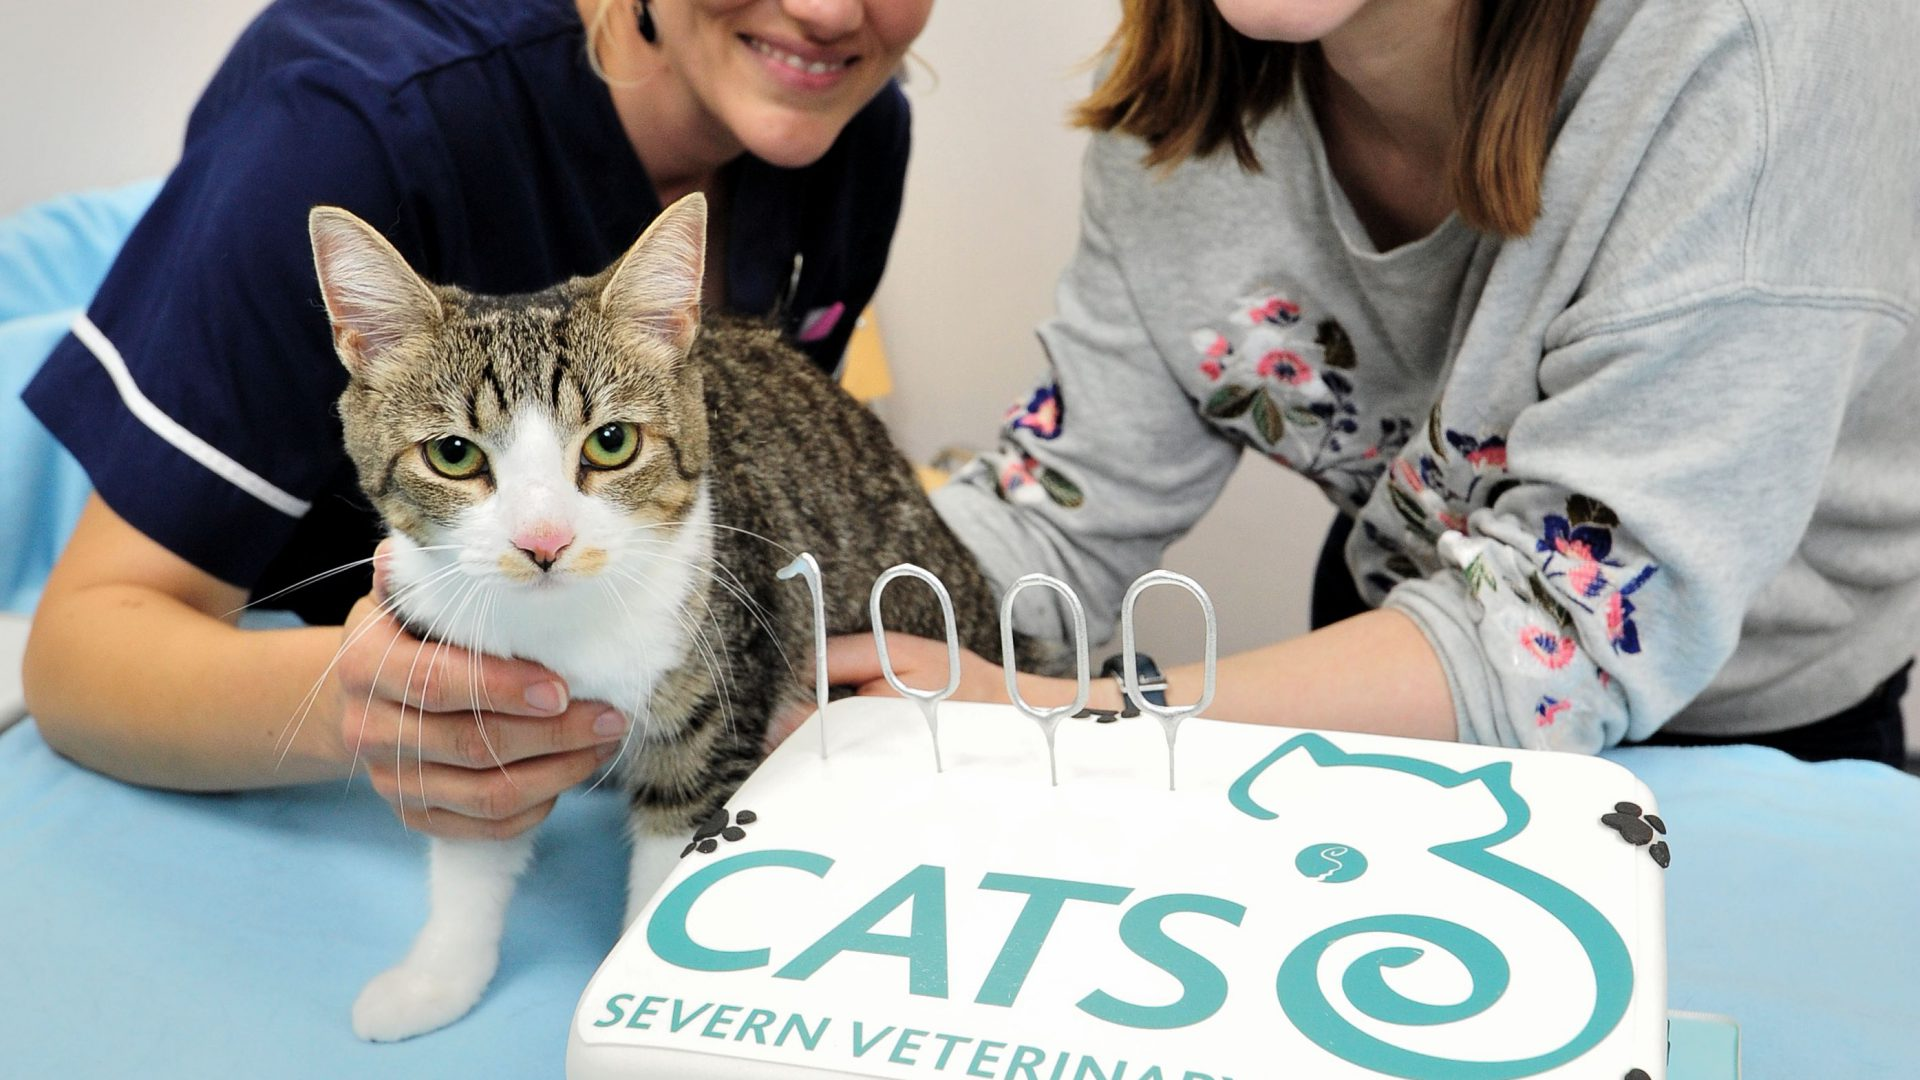 Miracle kitten is VIP guest at anniversary celebration of practice that saved her